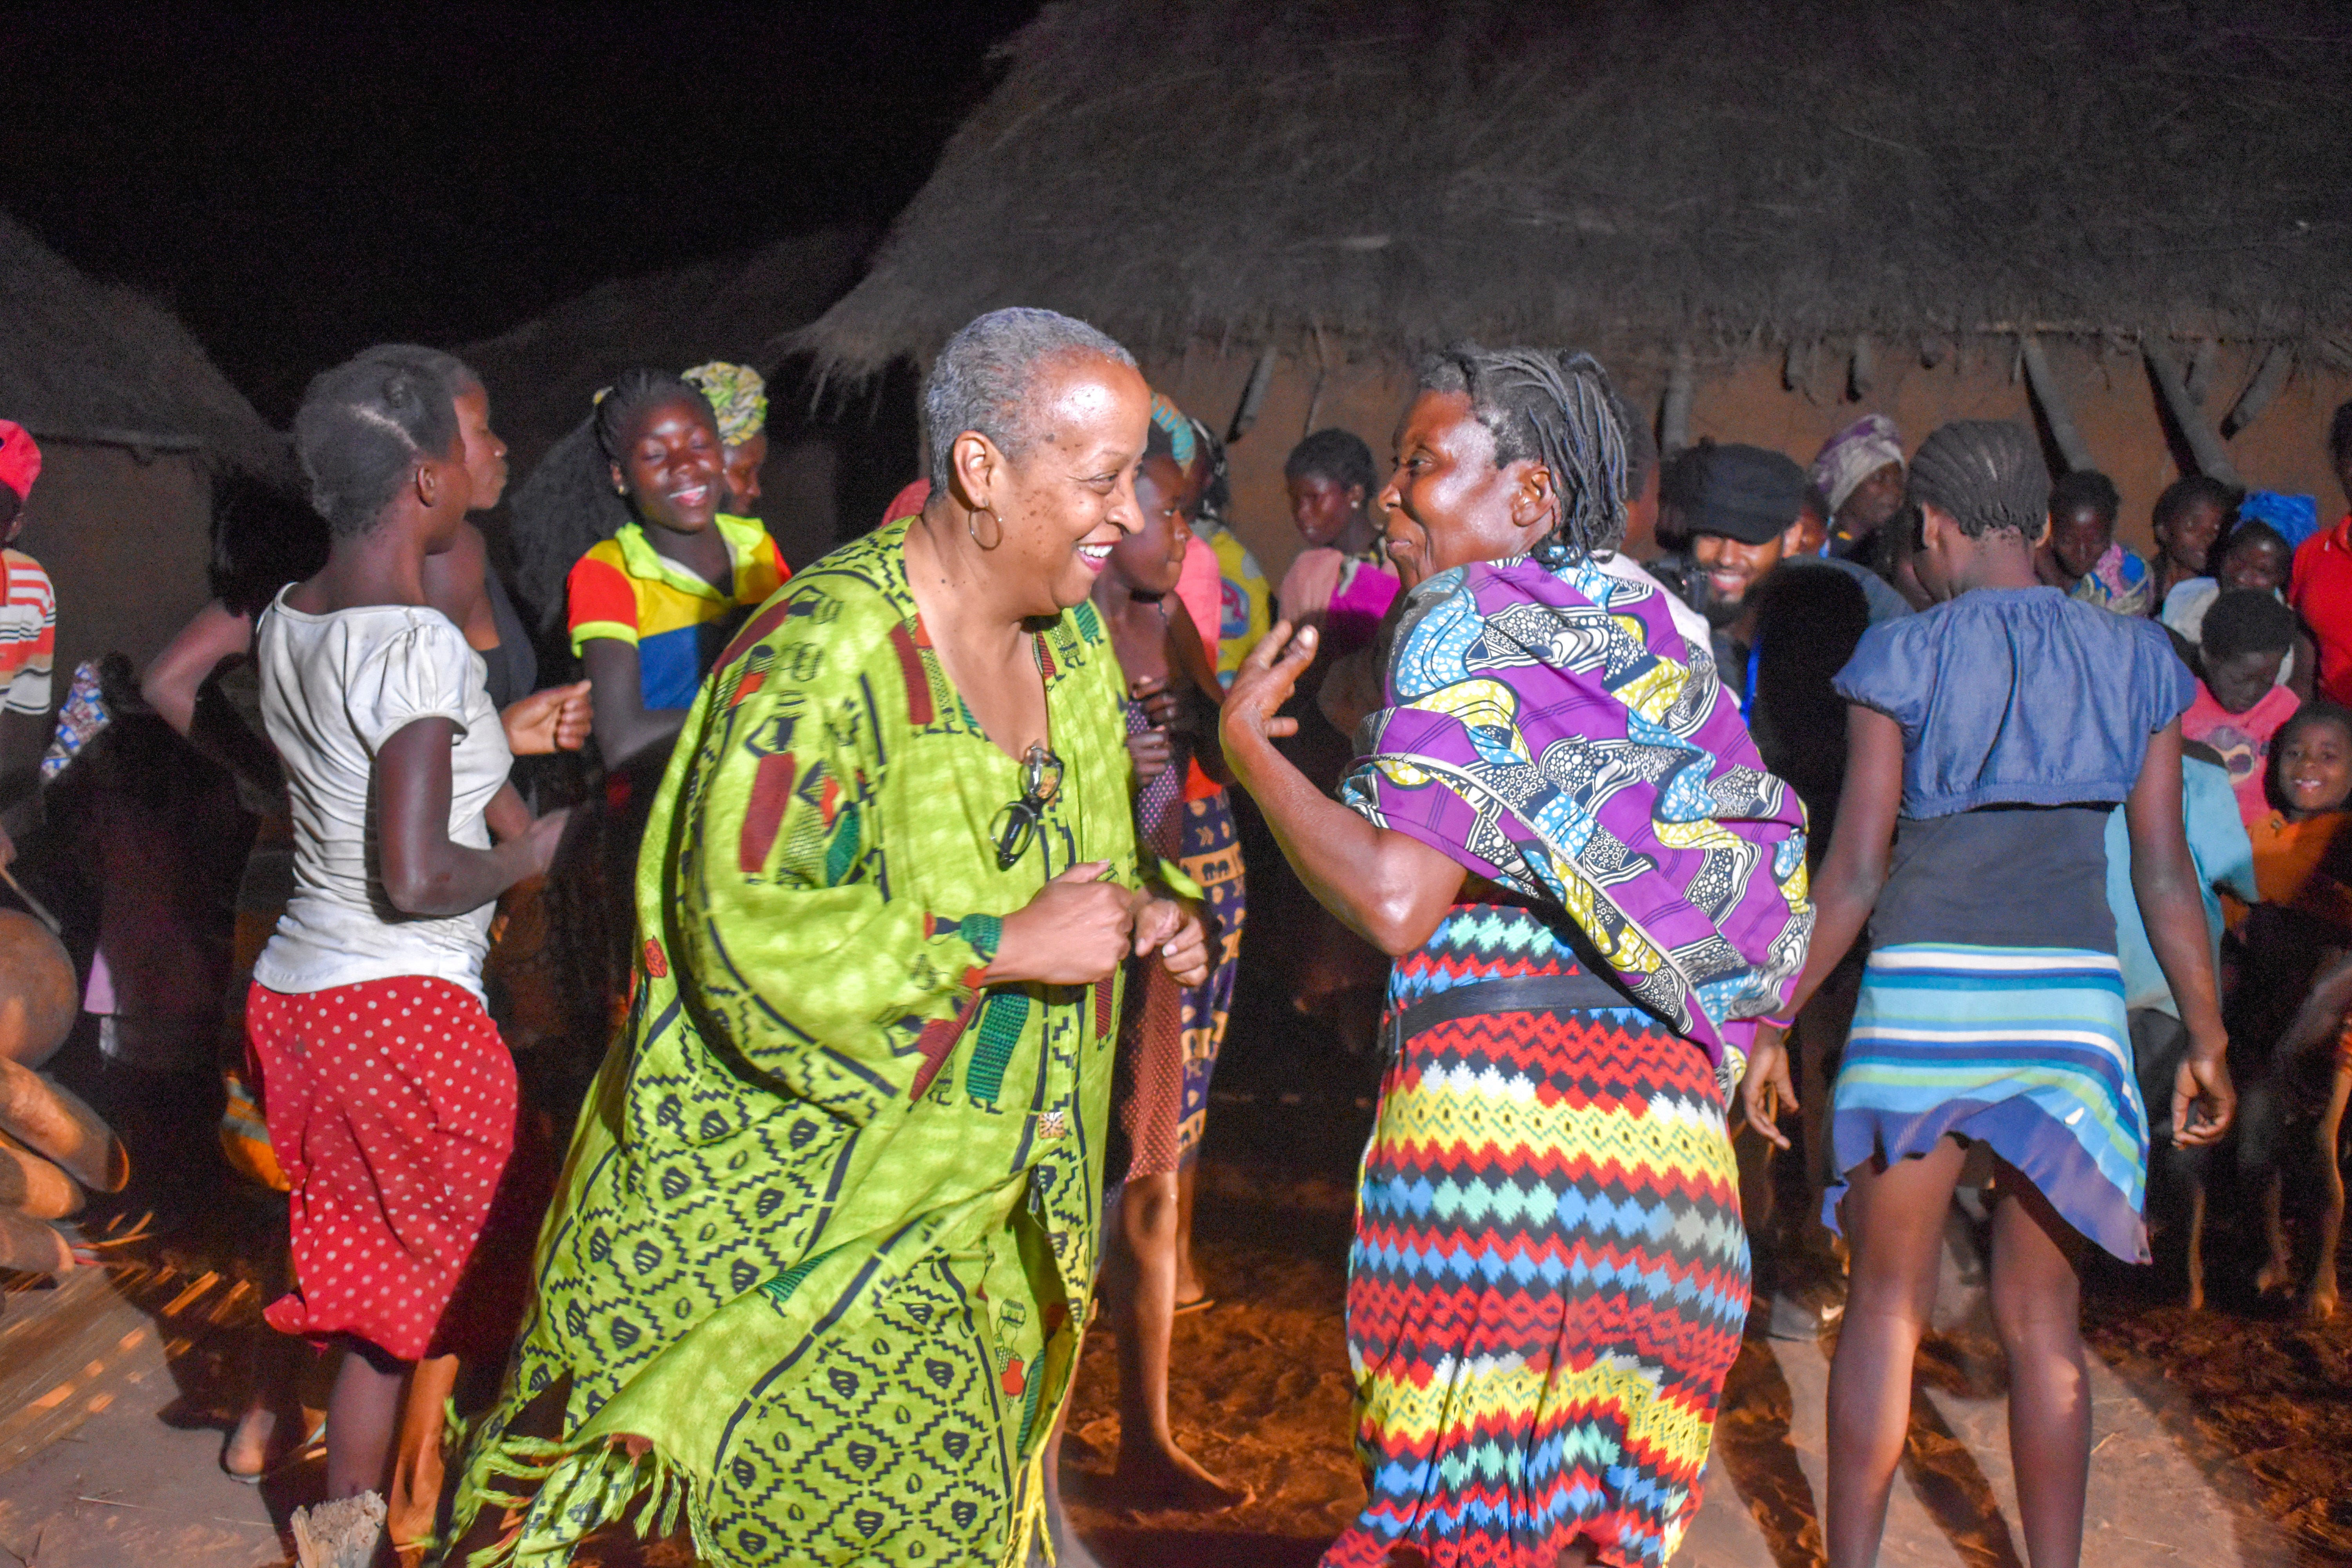 """Wanda Tucker and a village elder dance to the sounds of the marimba in Mufuma, Angola. """"It was as if she was so proud to show me something,"""" Wanda said. """"It was a connection without words."""""""